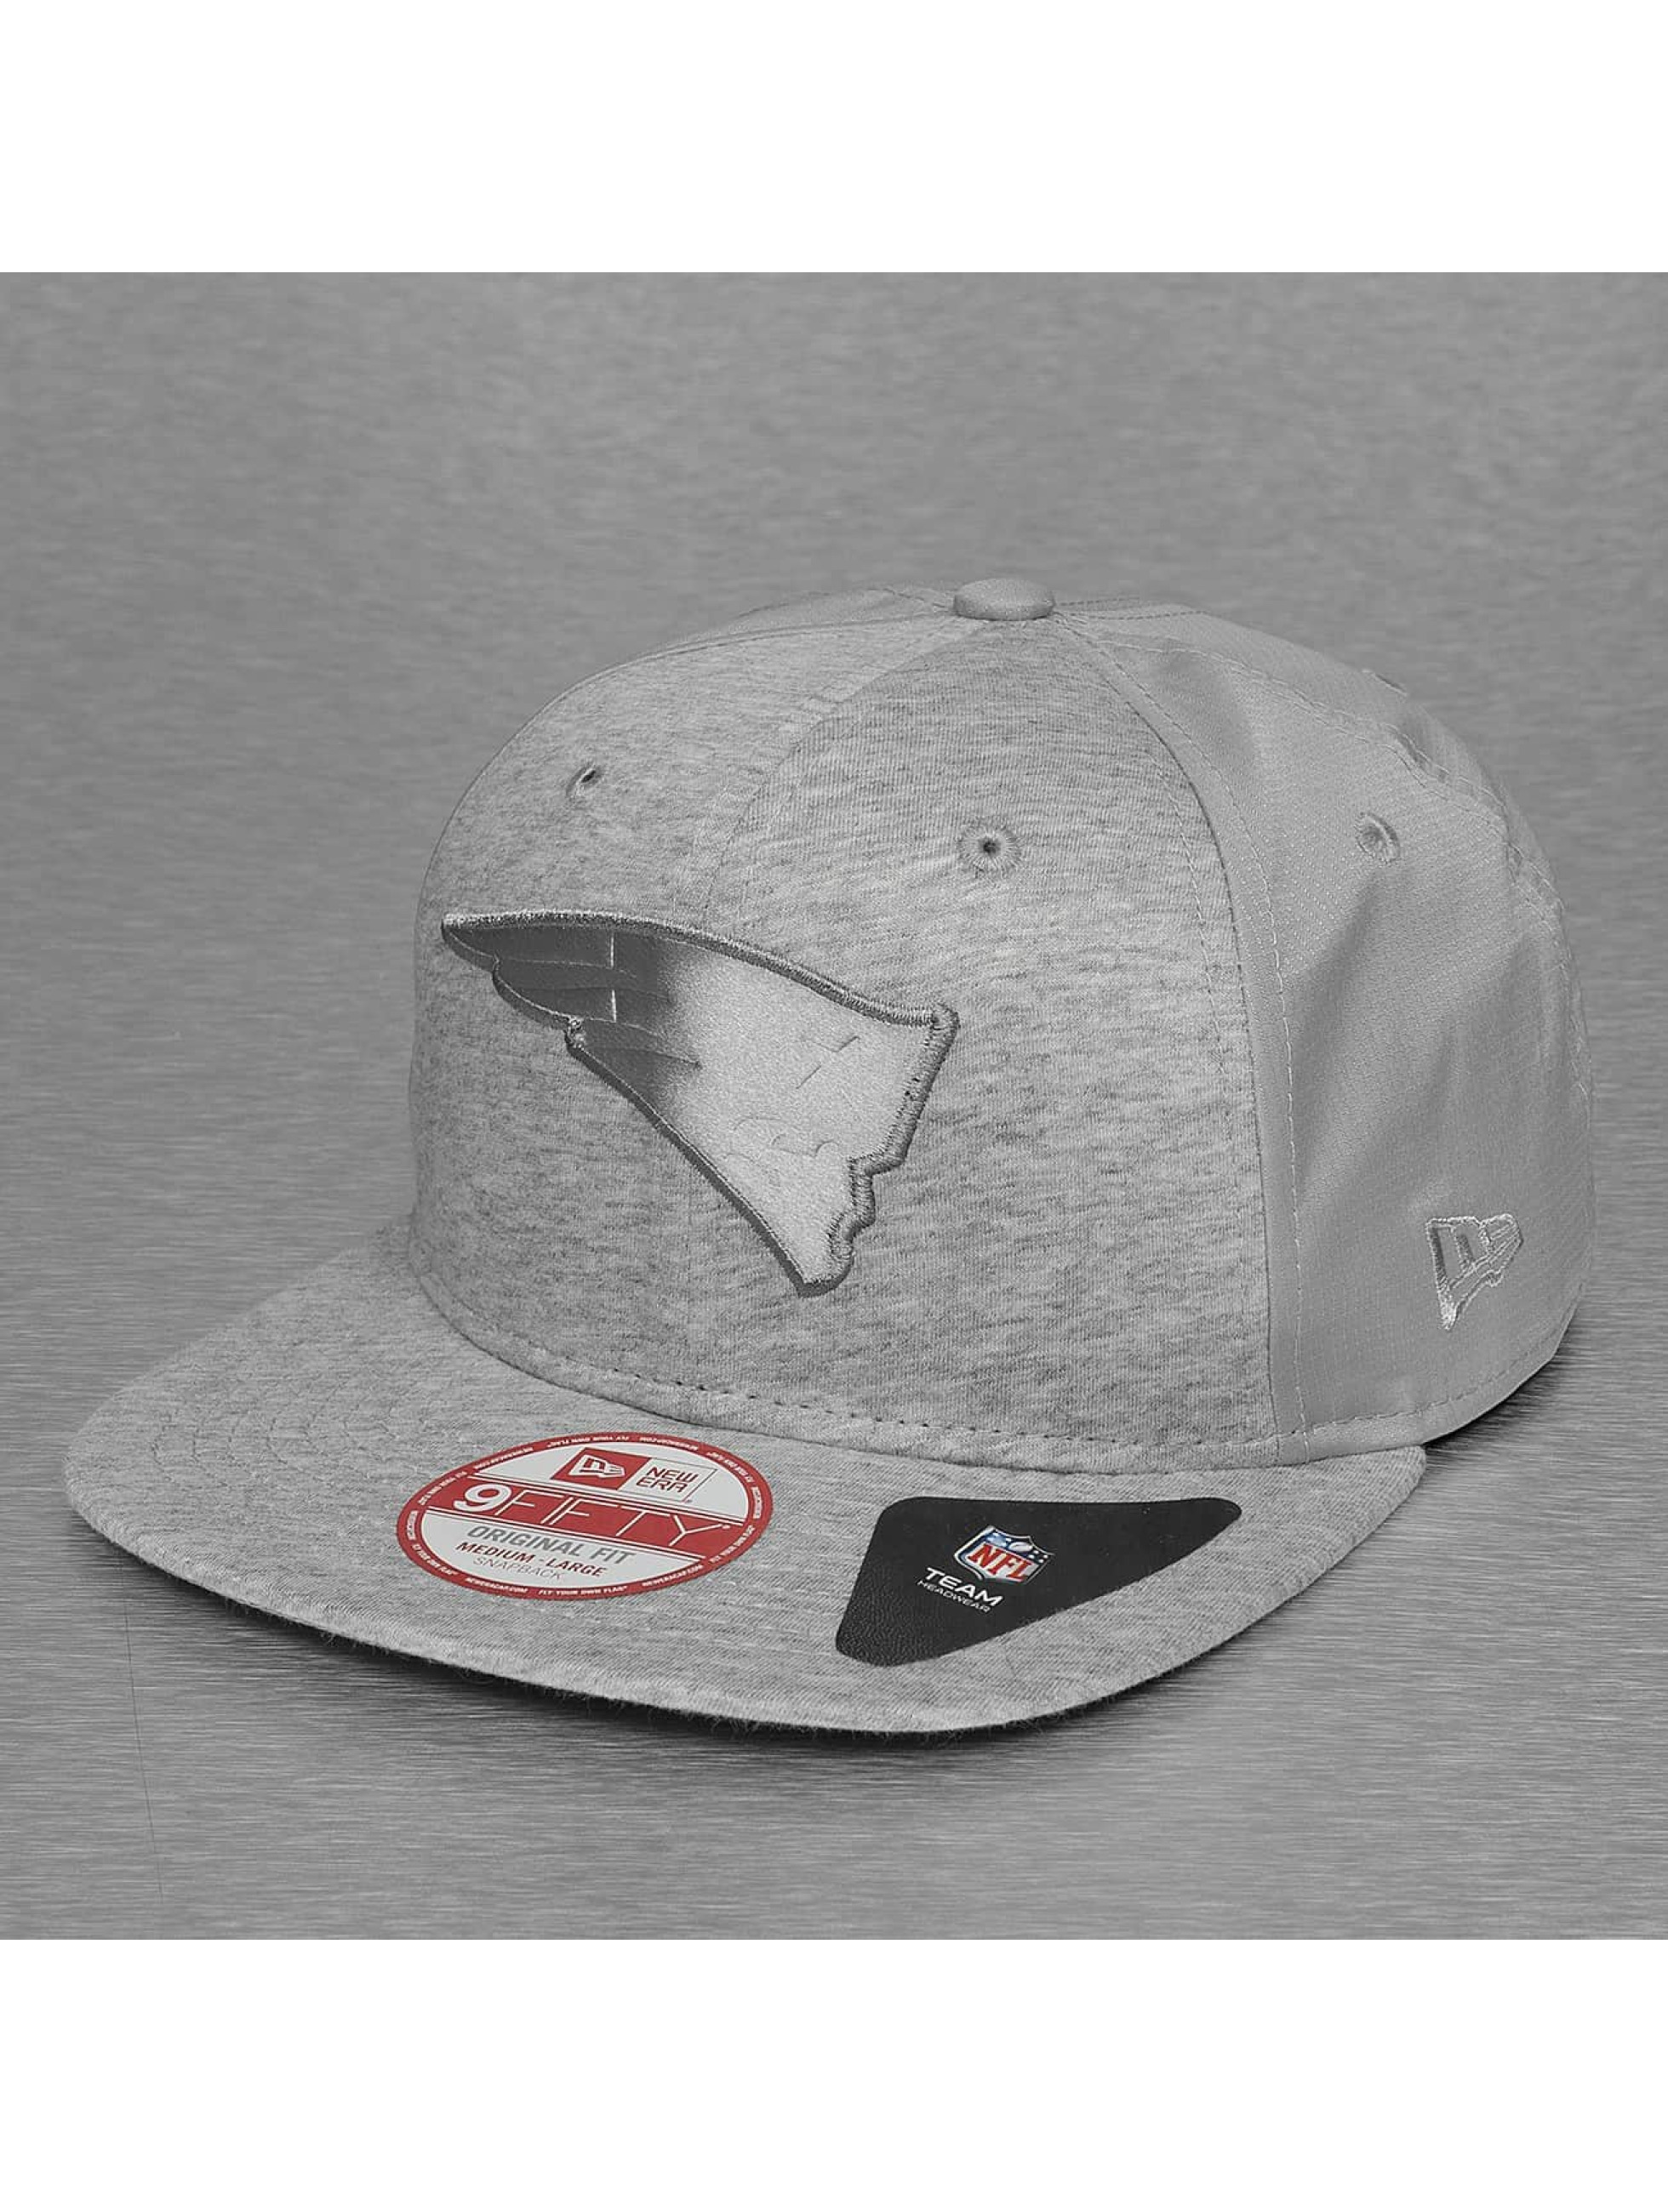 New Era Casquette Snapback & Strapback New England Patriots Remix Embossed gris